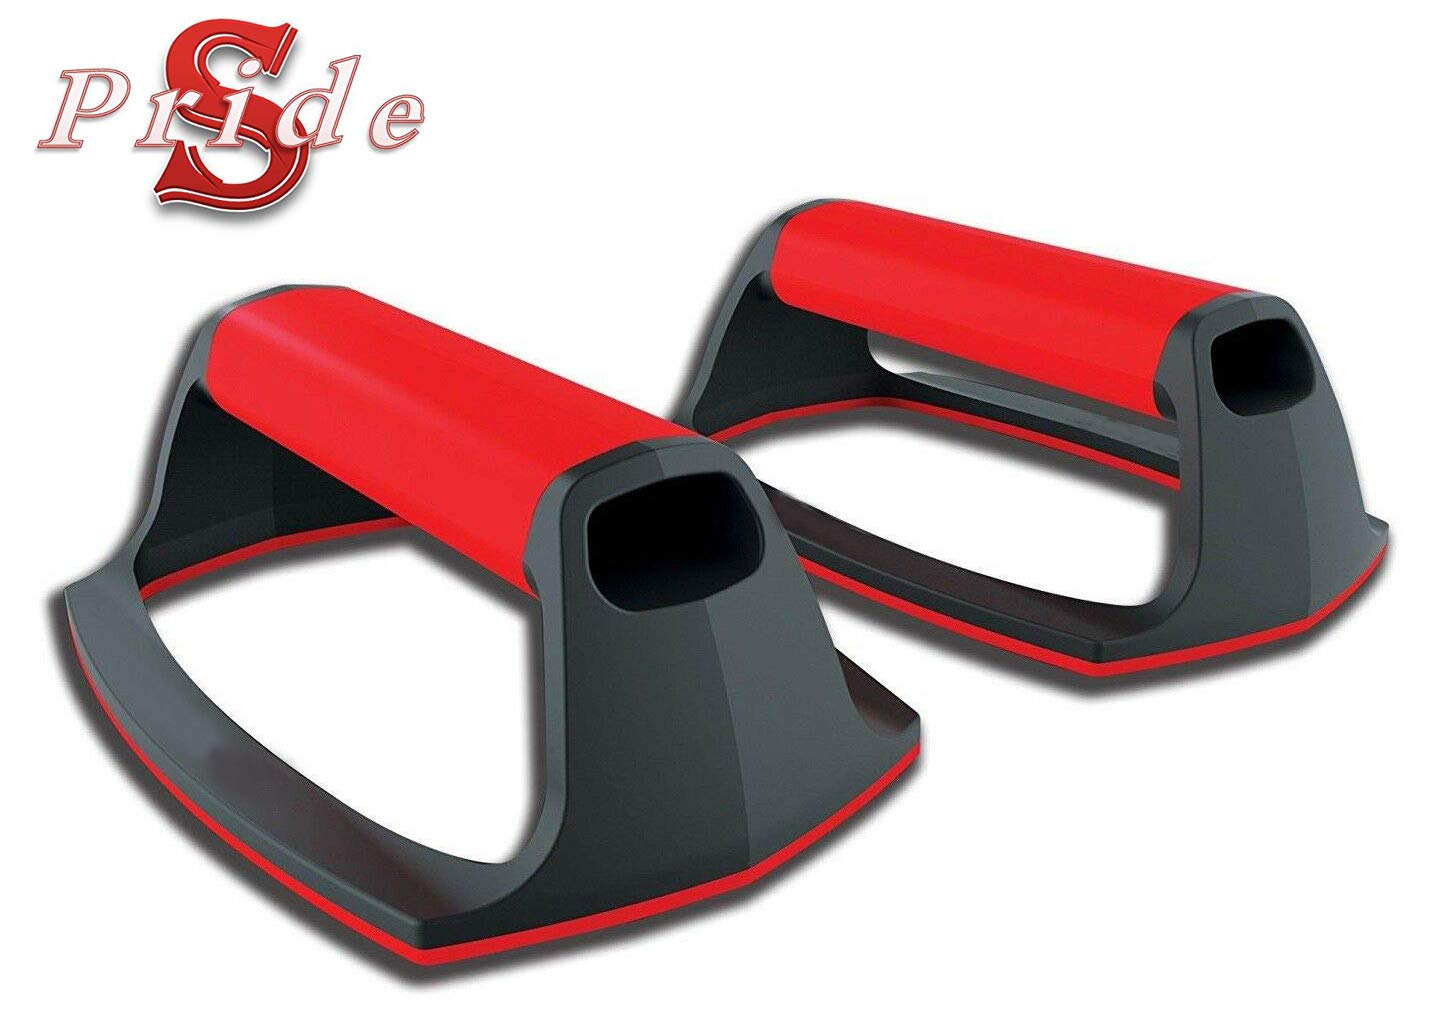 Fitness Push-Up Stands Exercise Handles Non-Slip Bars Padded Grips Gym Training